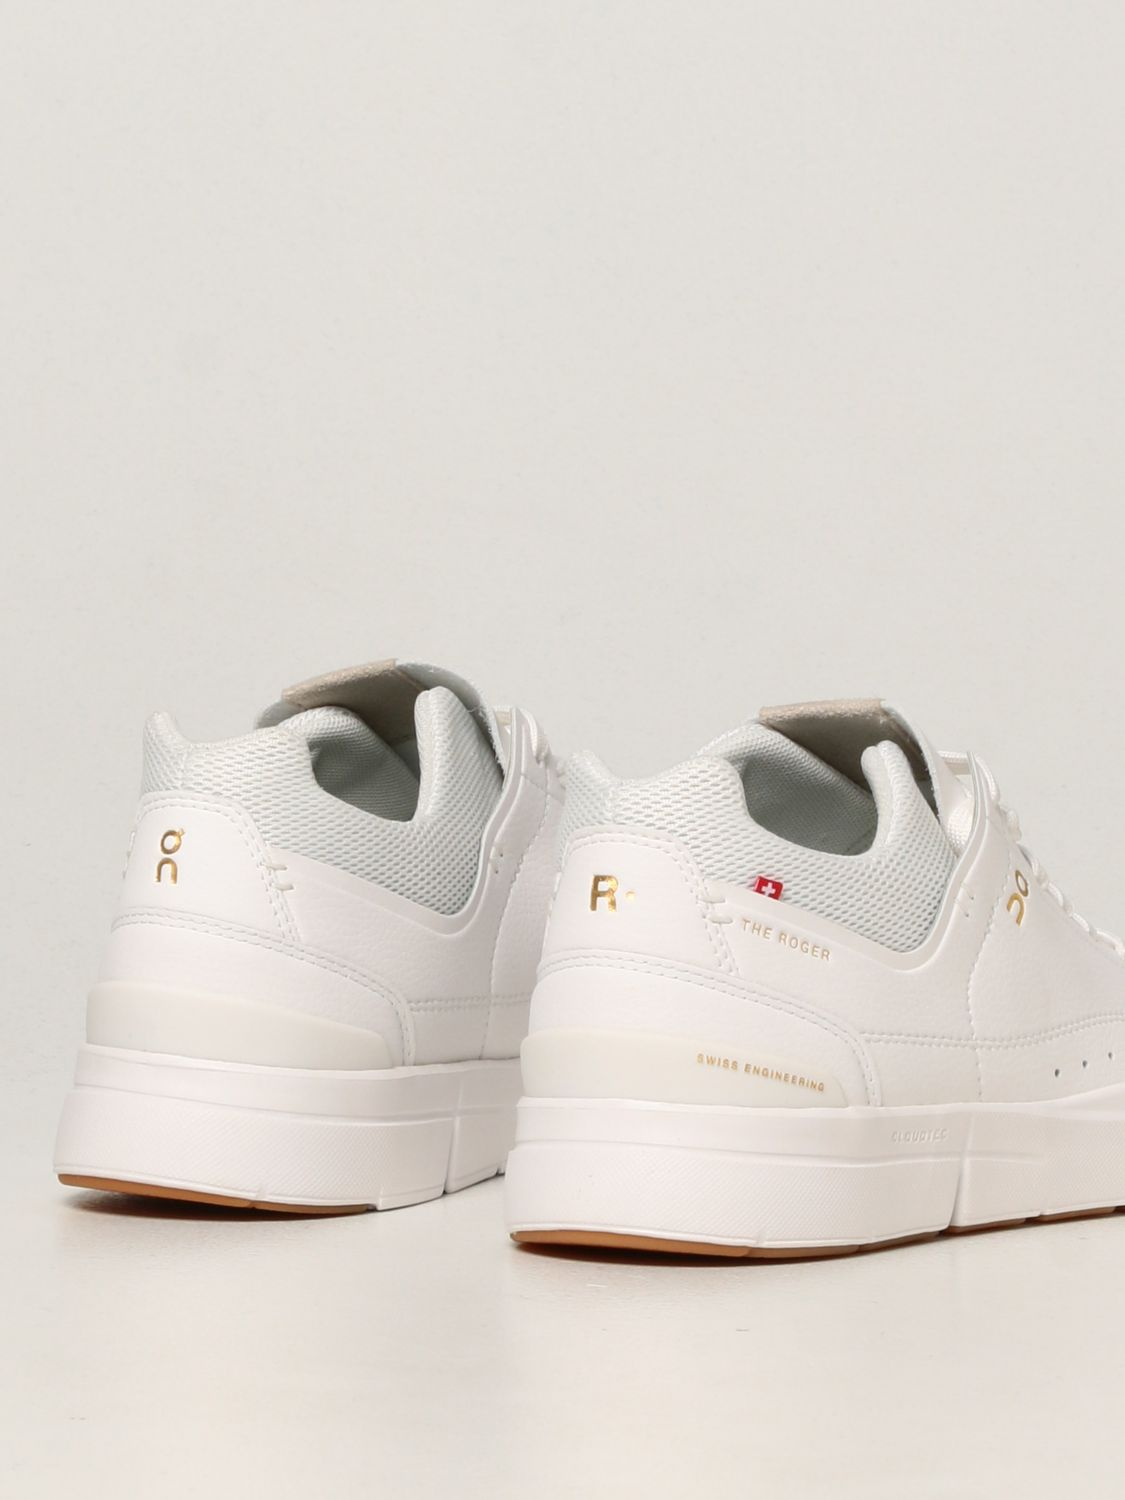 Baskets The Roger: Chaussures femme The Roger blanc 3